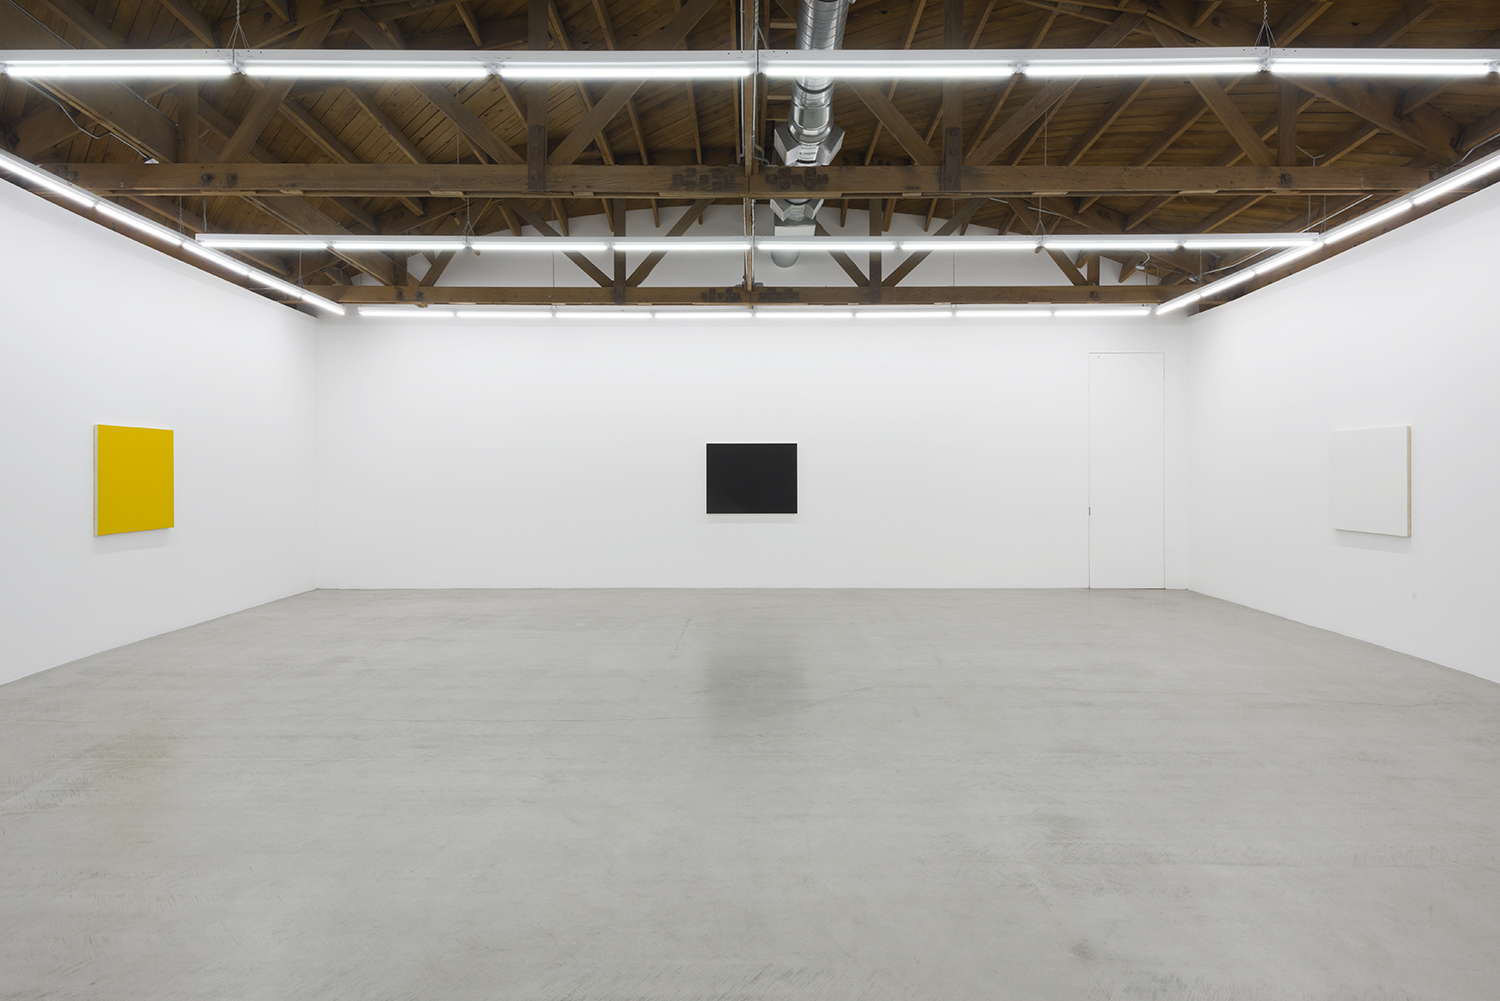 Installation view three of Edith Baumann's monochrome paintings, yellow, black and white